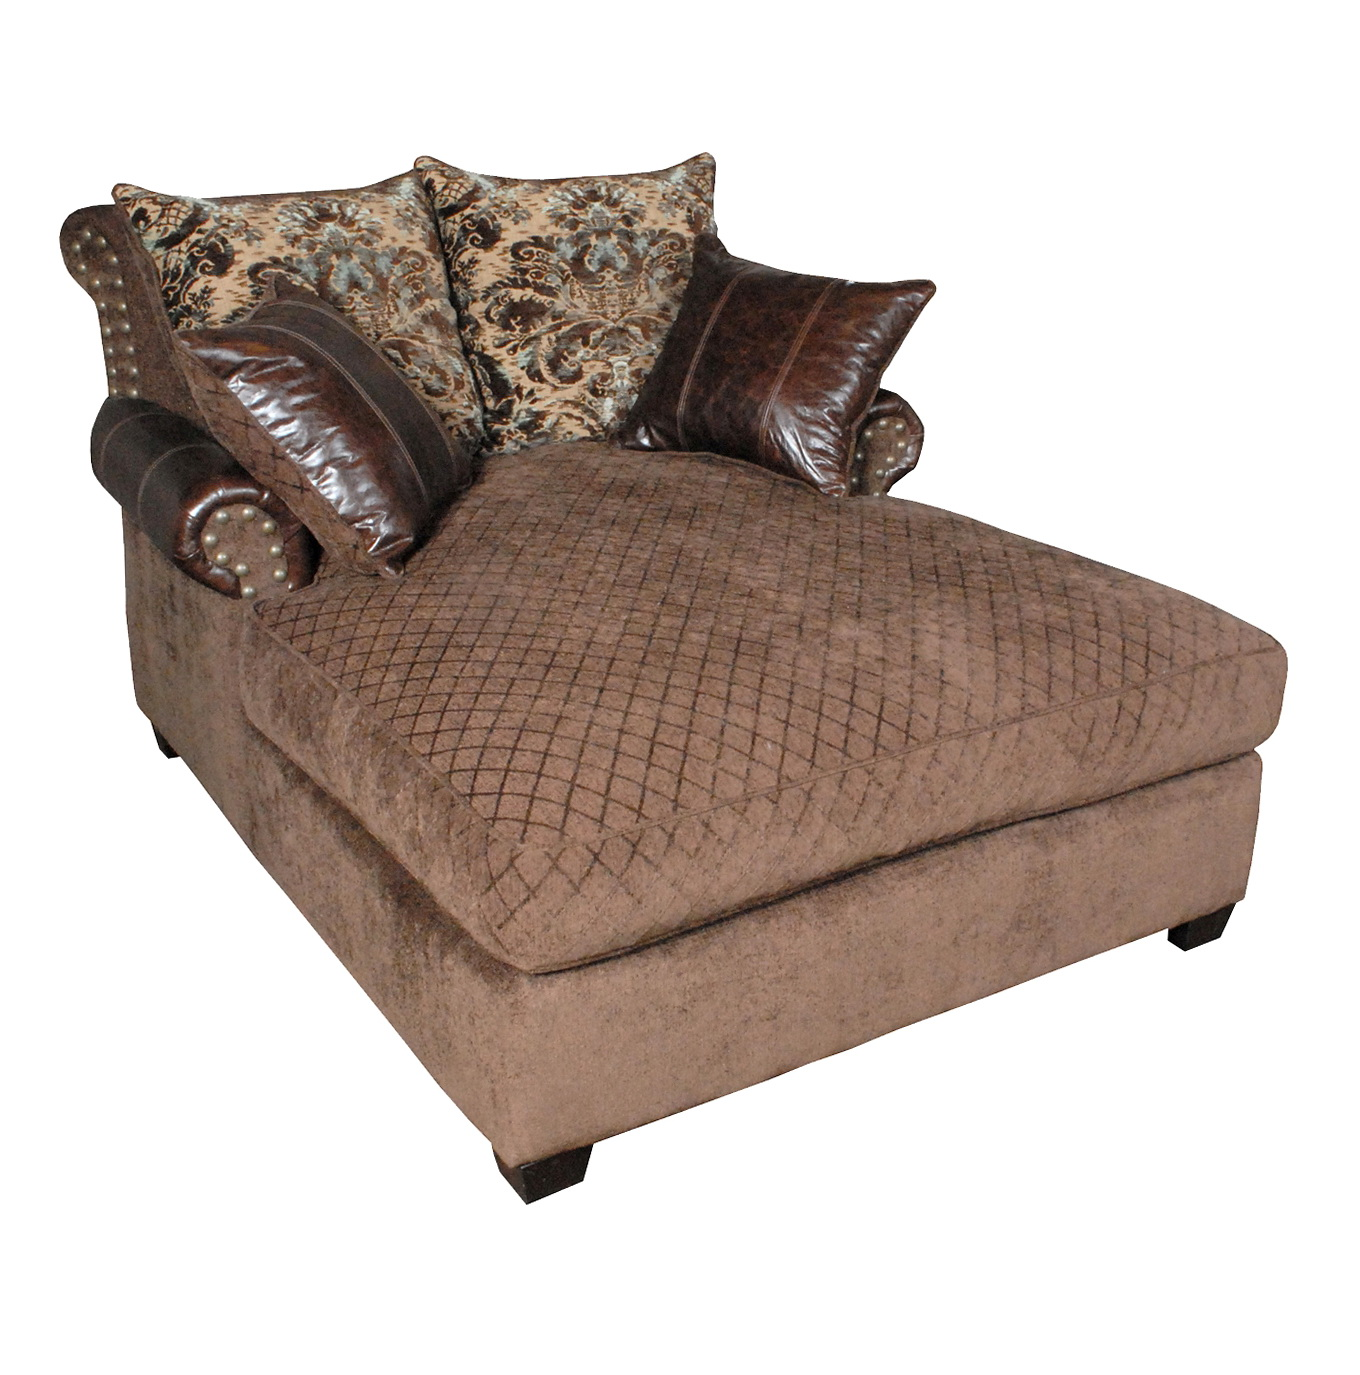 Double Chaise Lounge Indoor